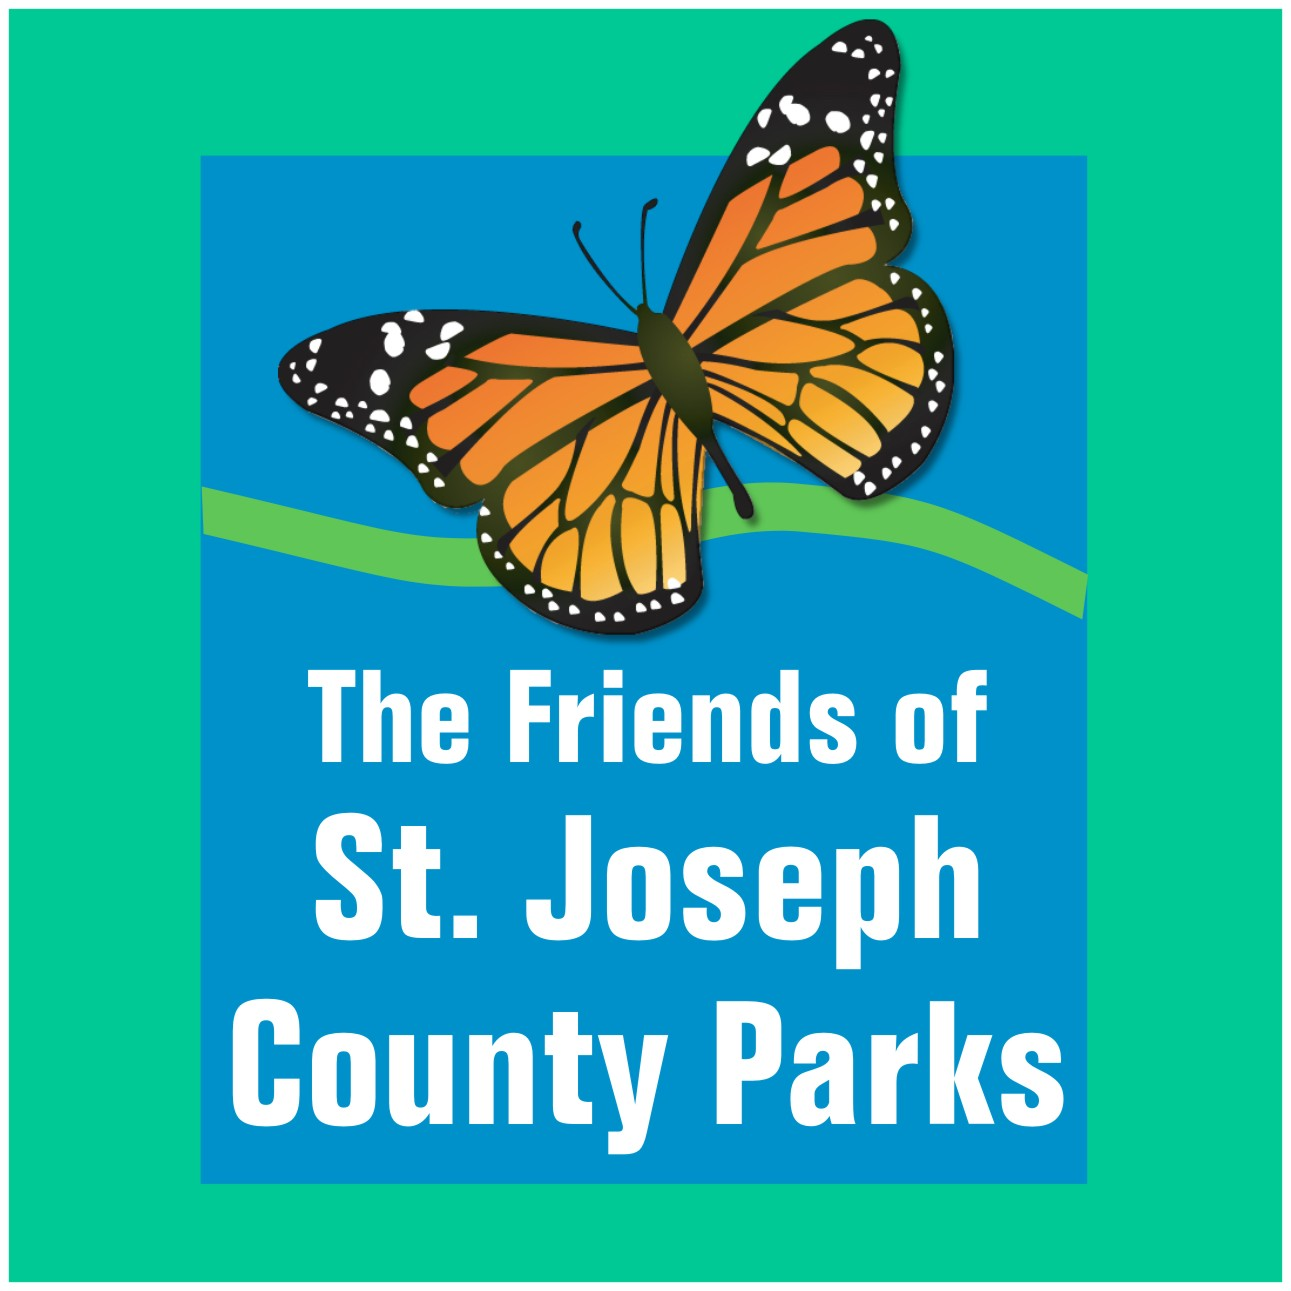 The Friends of the St. Joseph County Parks